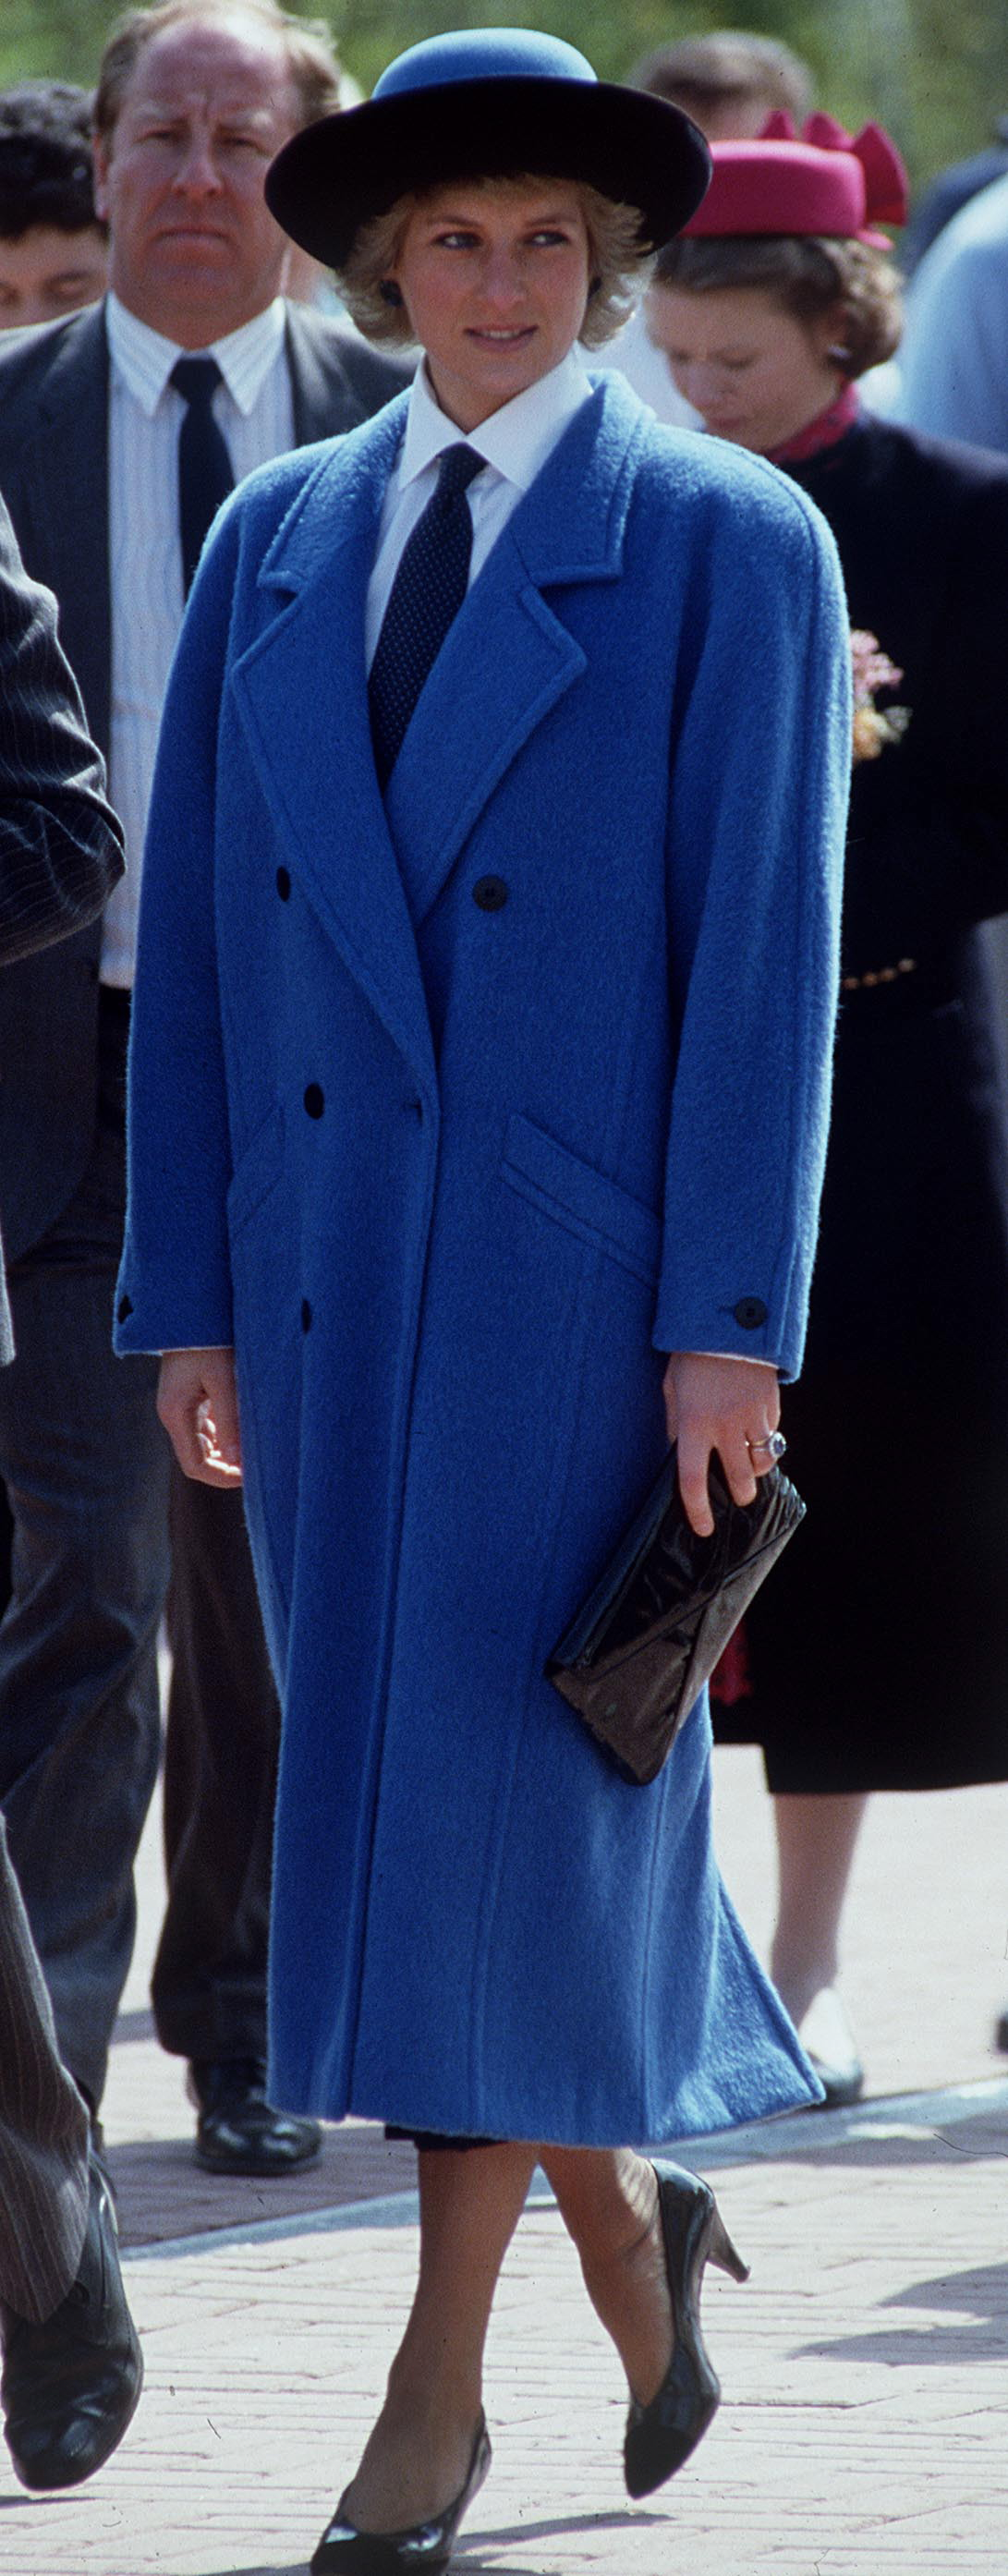 Diana Blue Coat And Tie